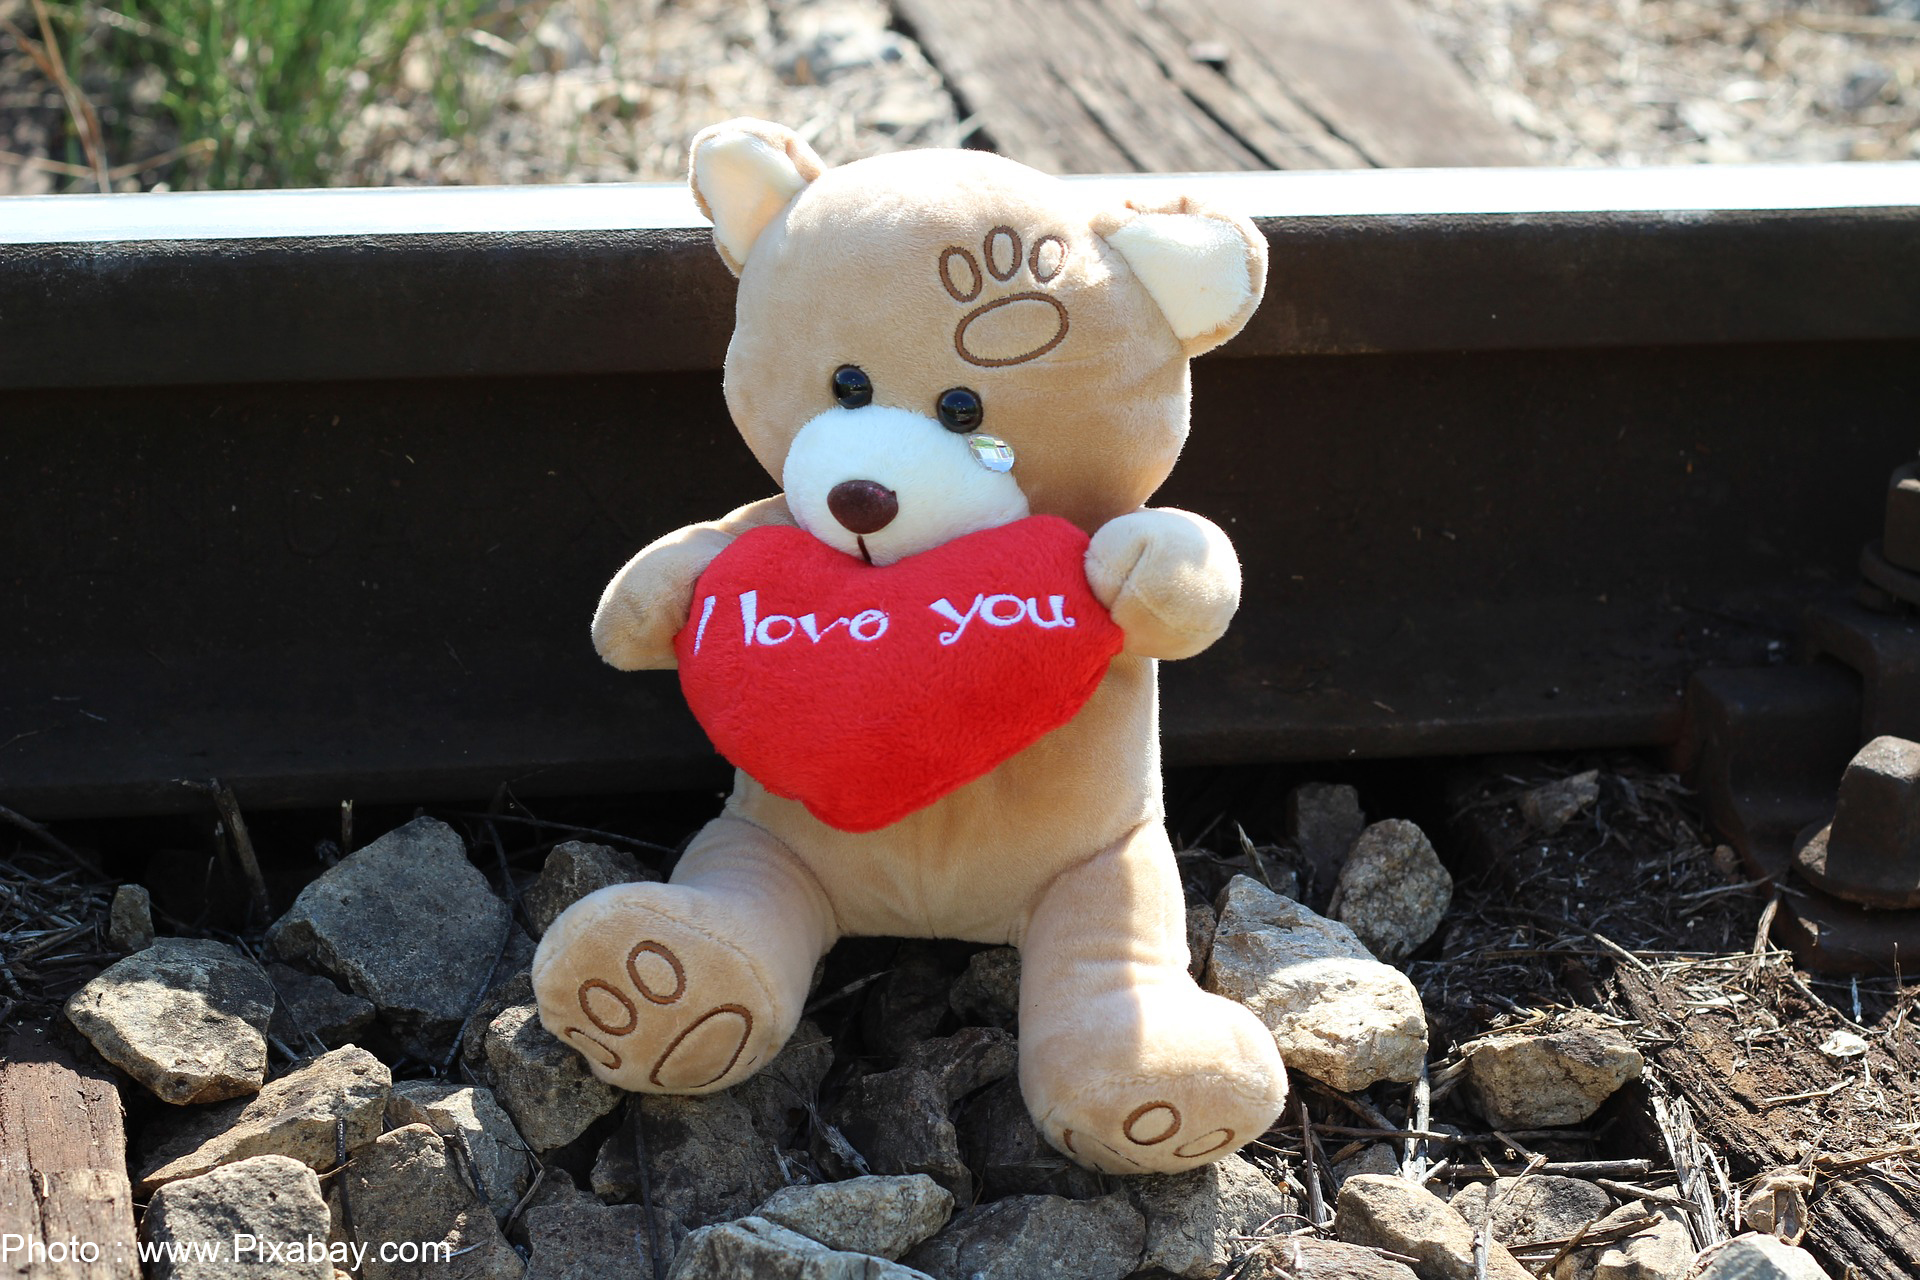 Teddy bear holding a heart sign that says I love you